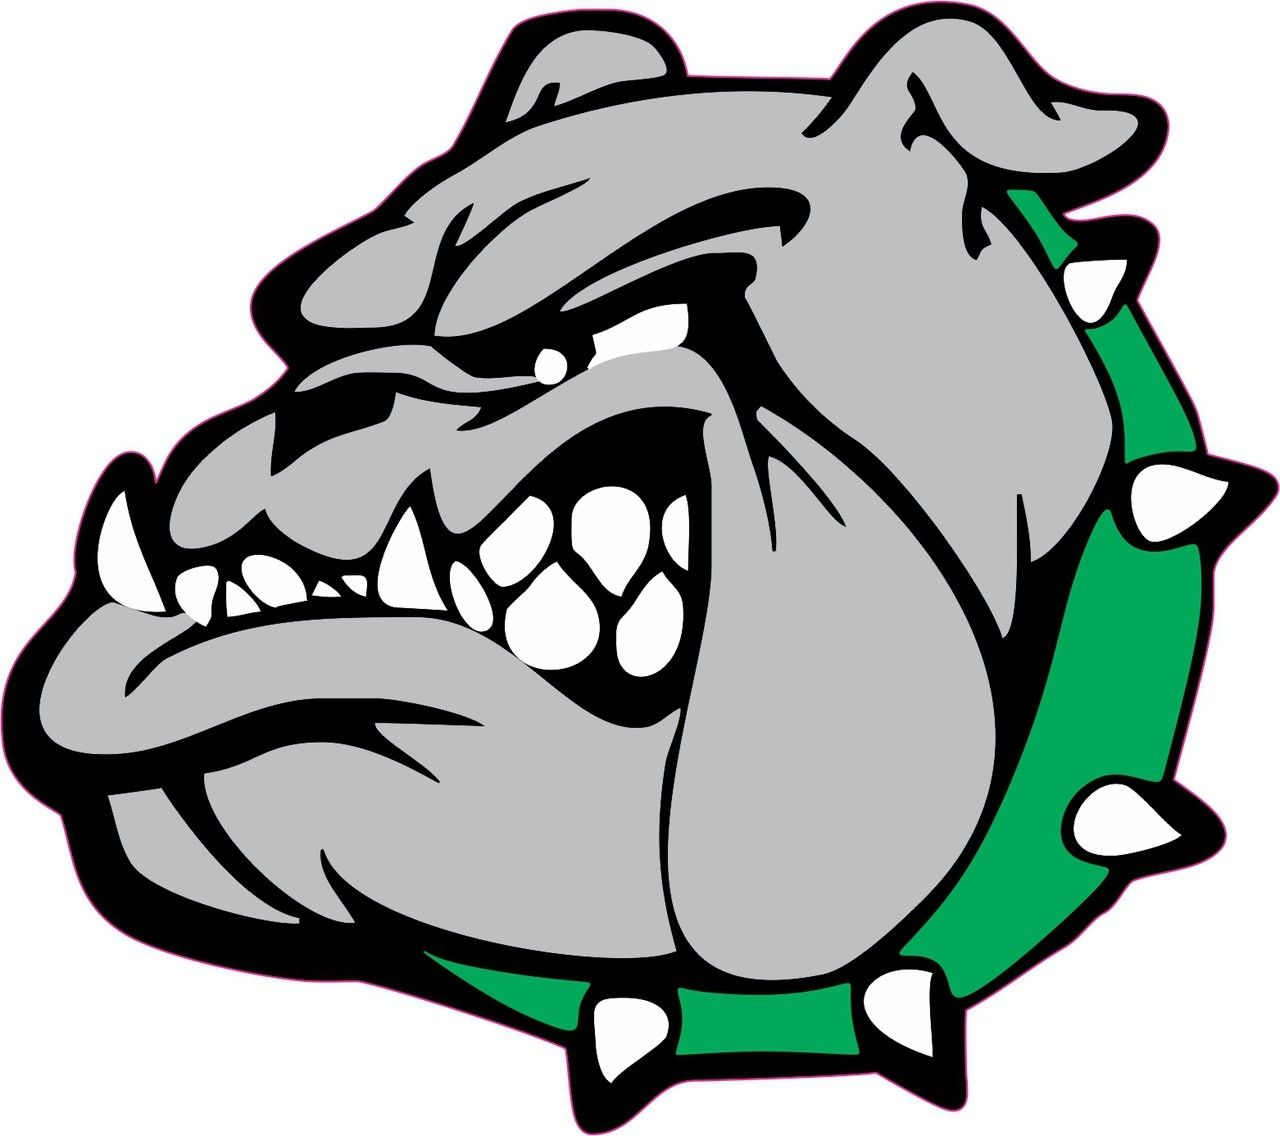 5in X 4 5in Green Collar Bull Dog Mascots Bumper Sticker Vinyl